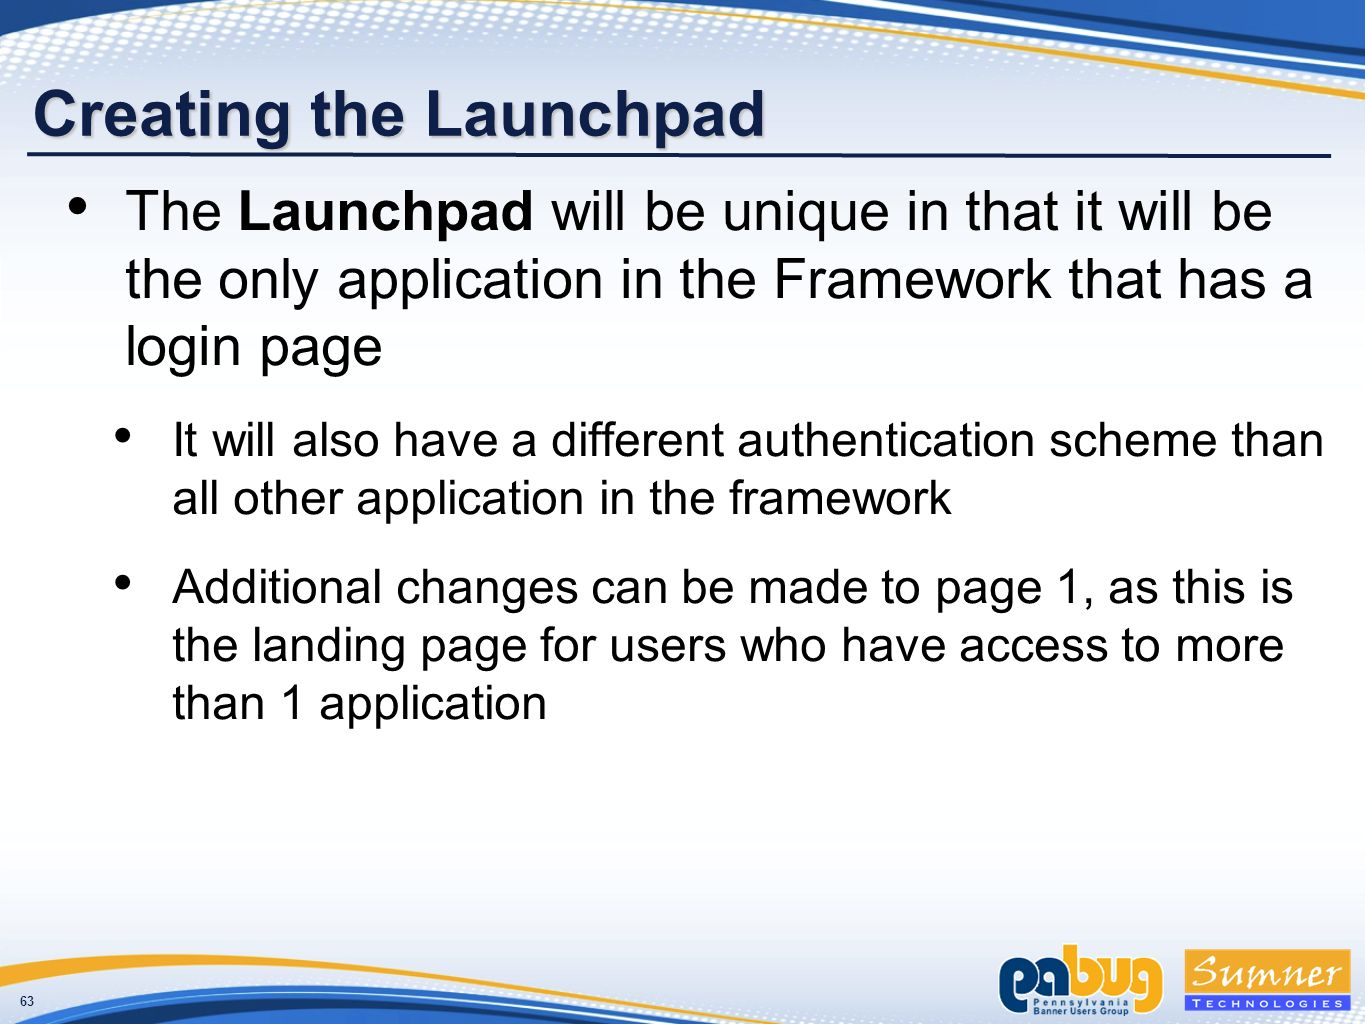 63 Creating the Launchpad The Launchpad will be unique in that it will be the only application in the Framework that has a login page It will also have a different authentication scheme than all other application in the framework Additional changes can be made to page 1, as this is the landing page for users who have access to more than 1 application